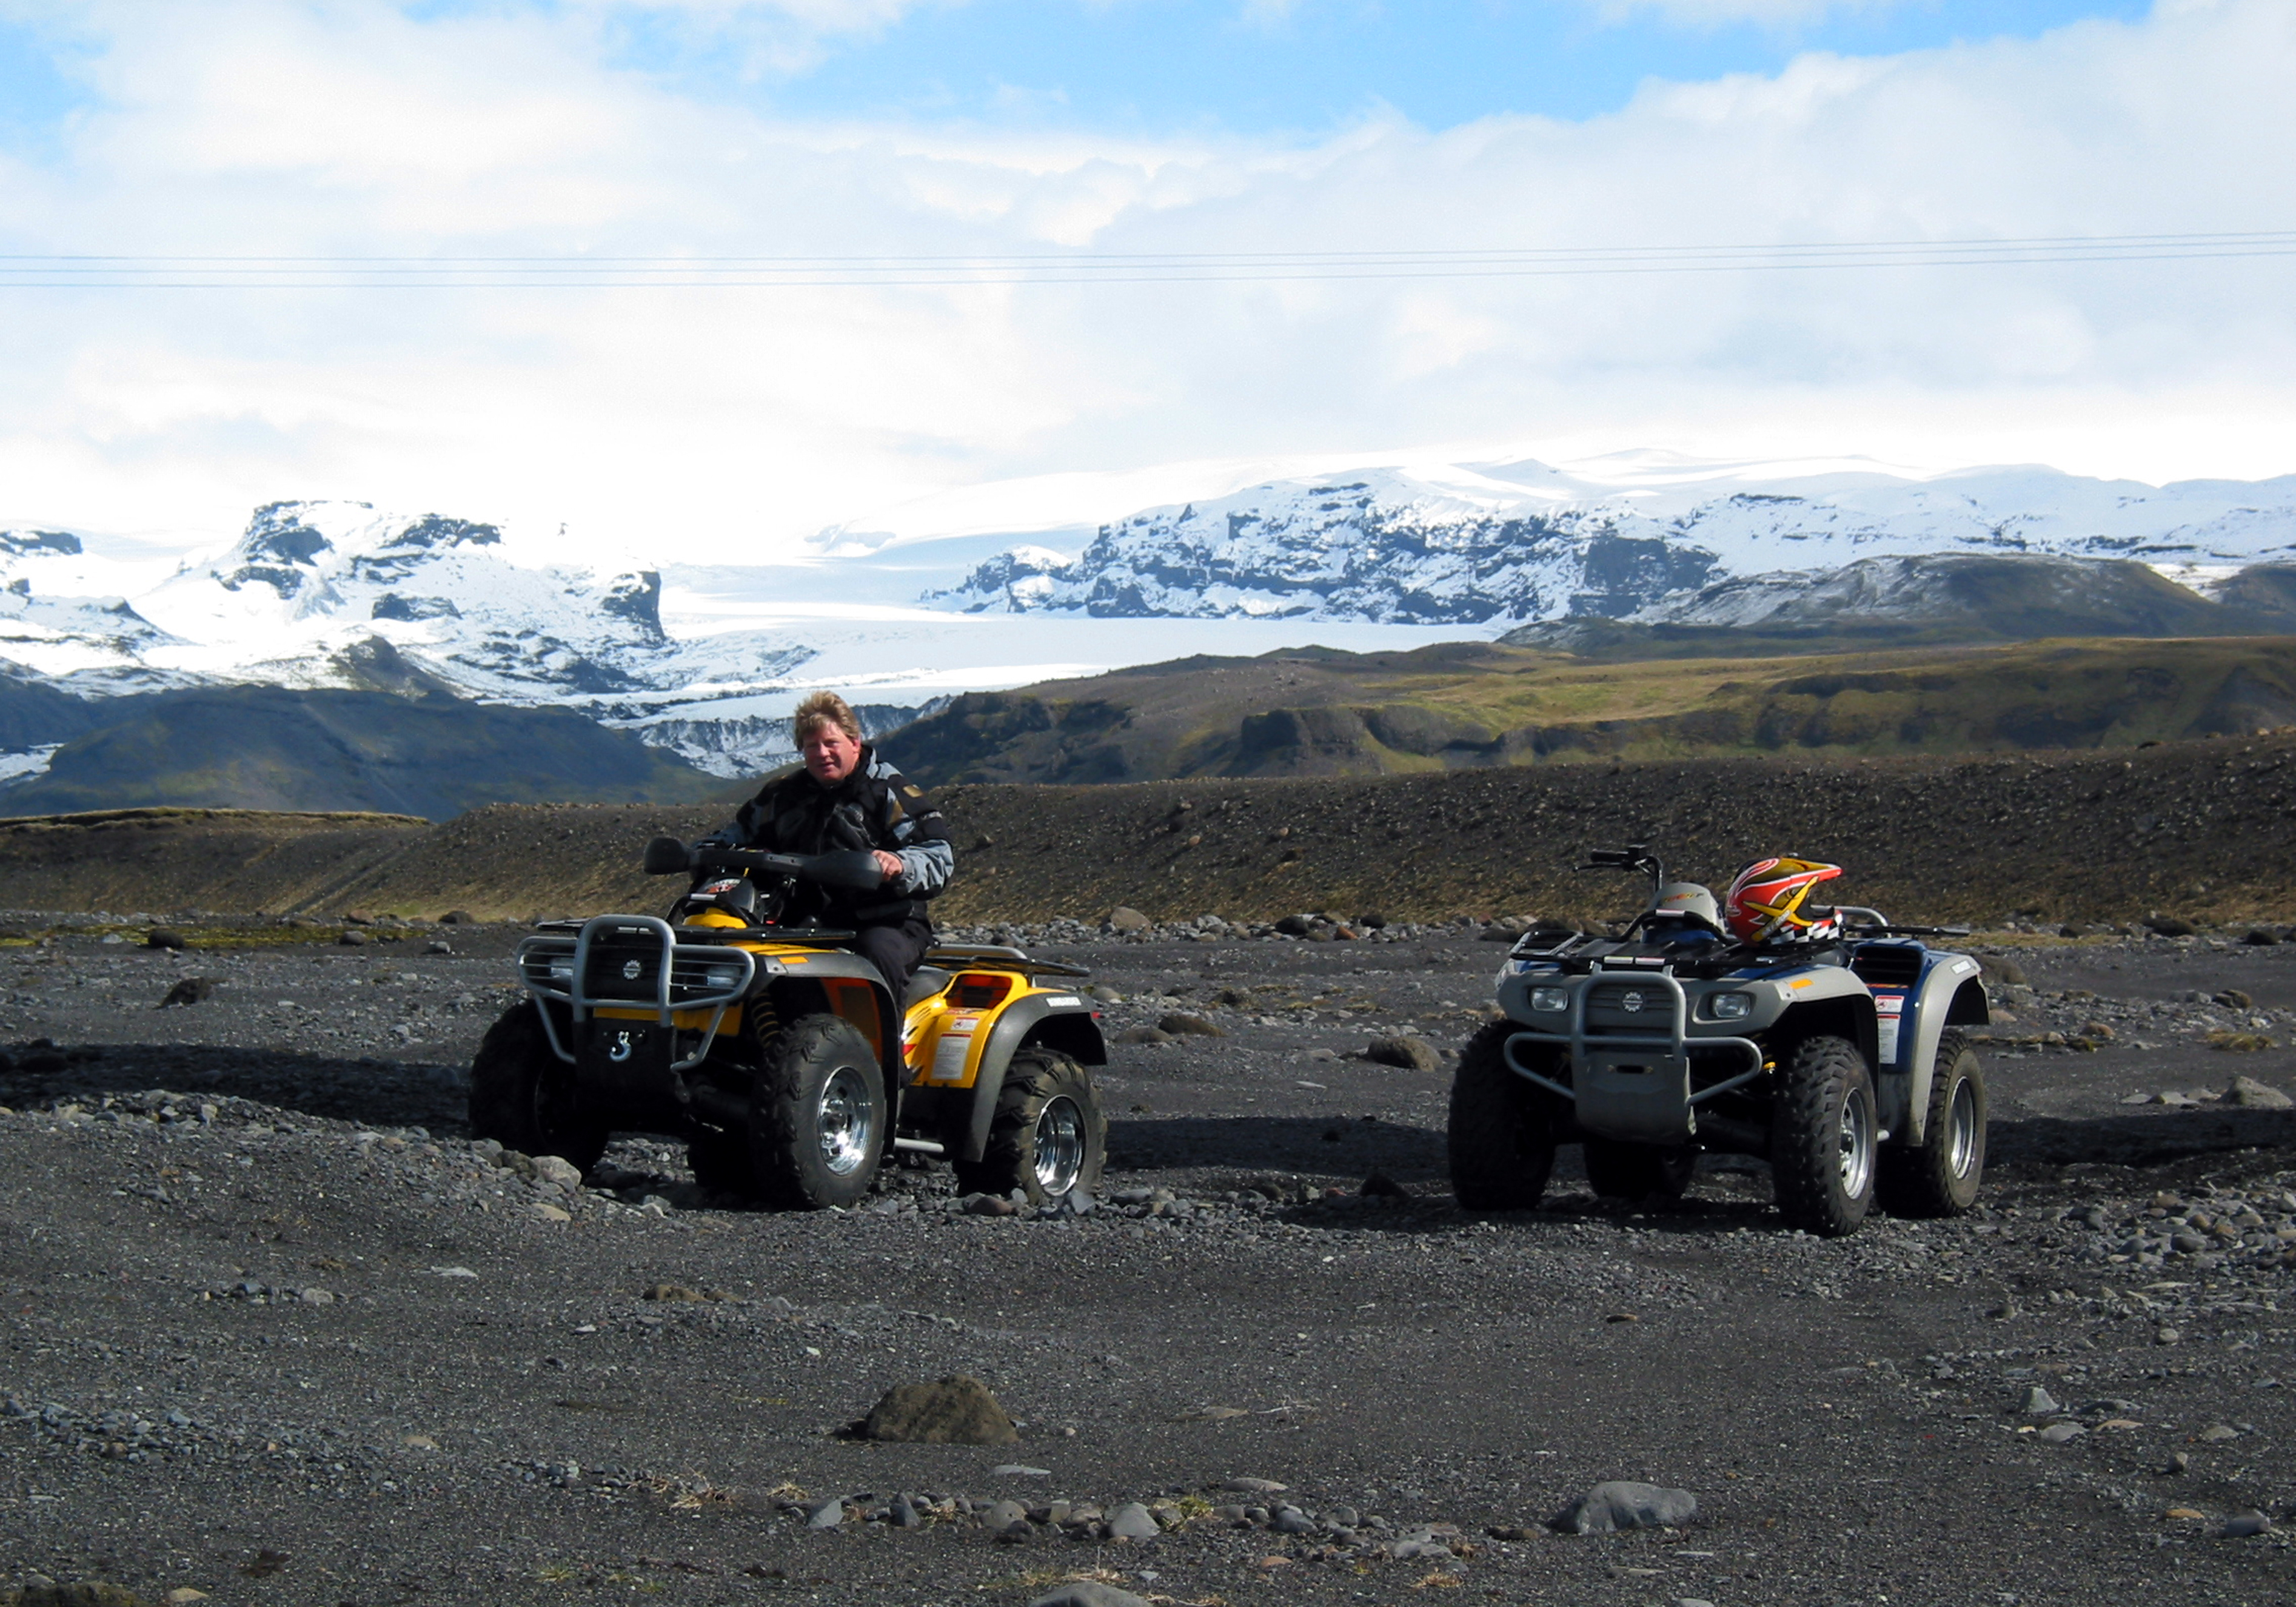 atv tour starting in south iceland guide to iceland. Black Bedroom Furniture Sets. Home Design Ideas